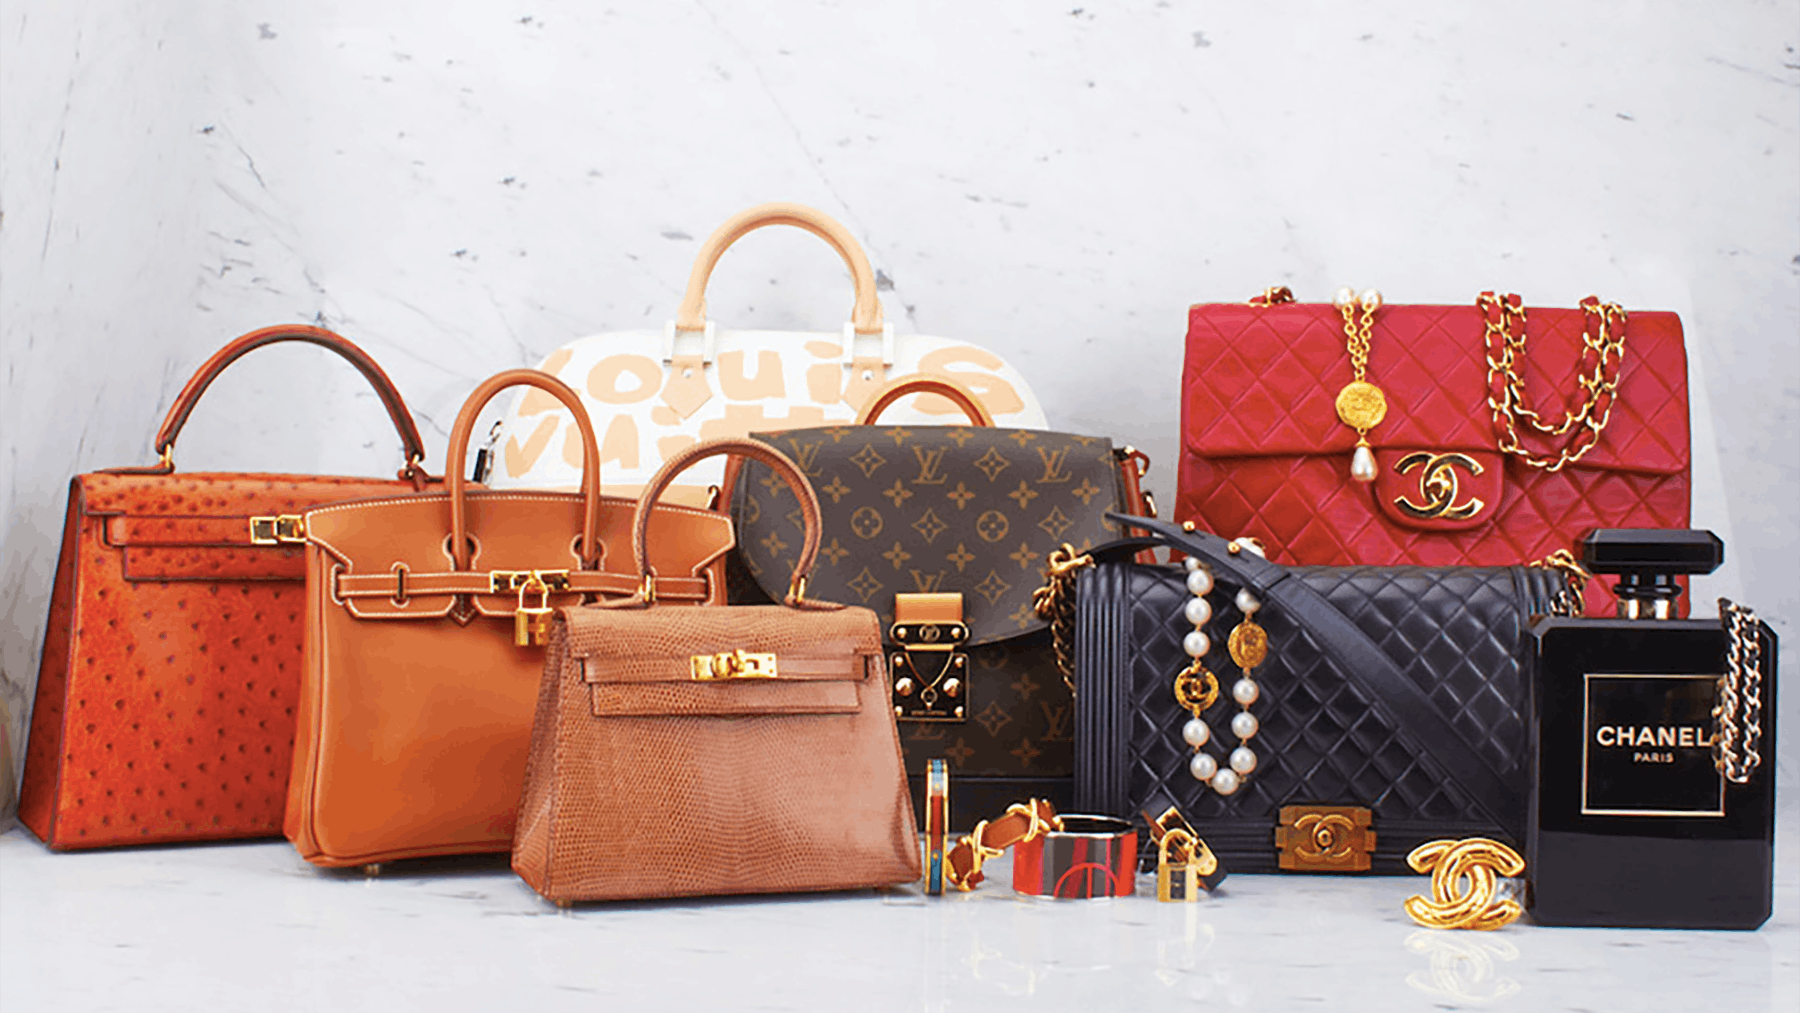 Bags by Hermès, Louis Vuitton and Chanel, sold by WGACA | Source: WGACA